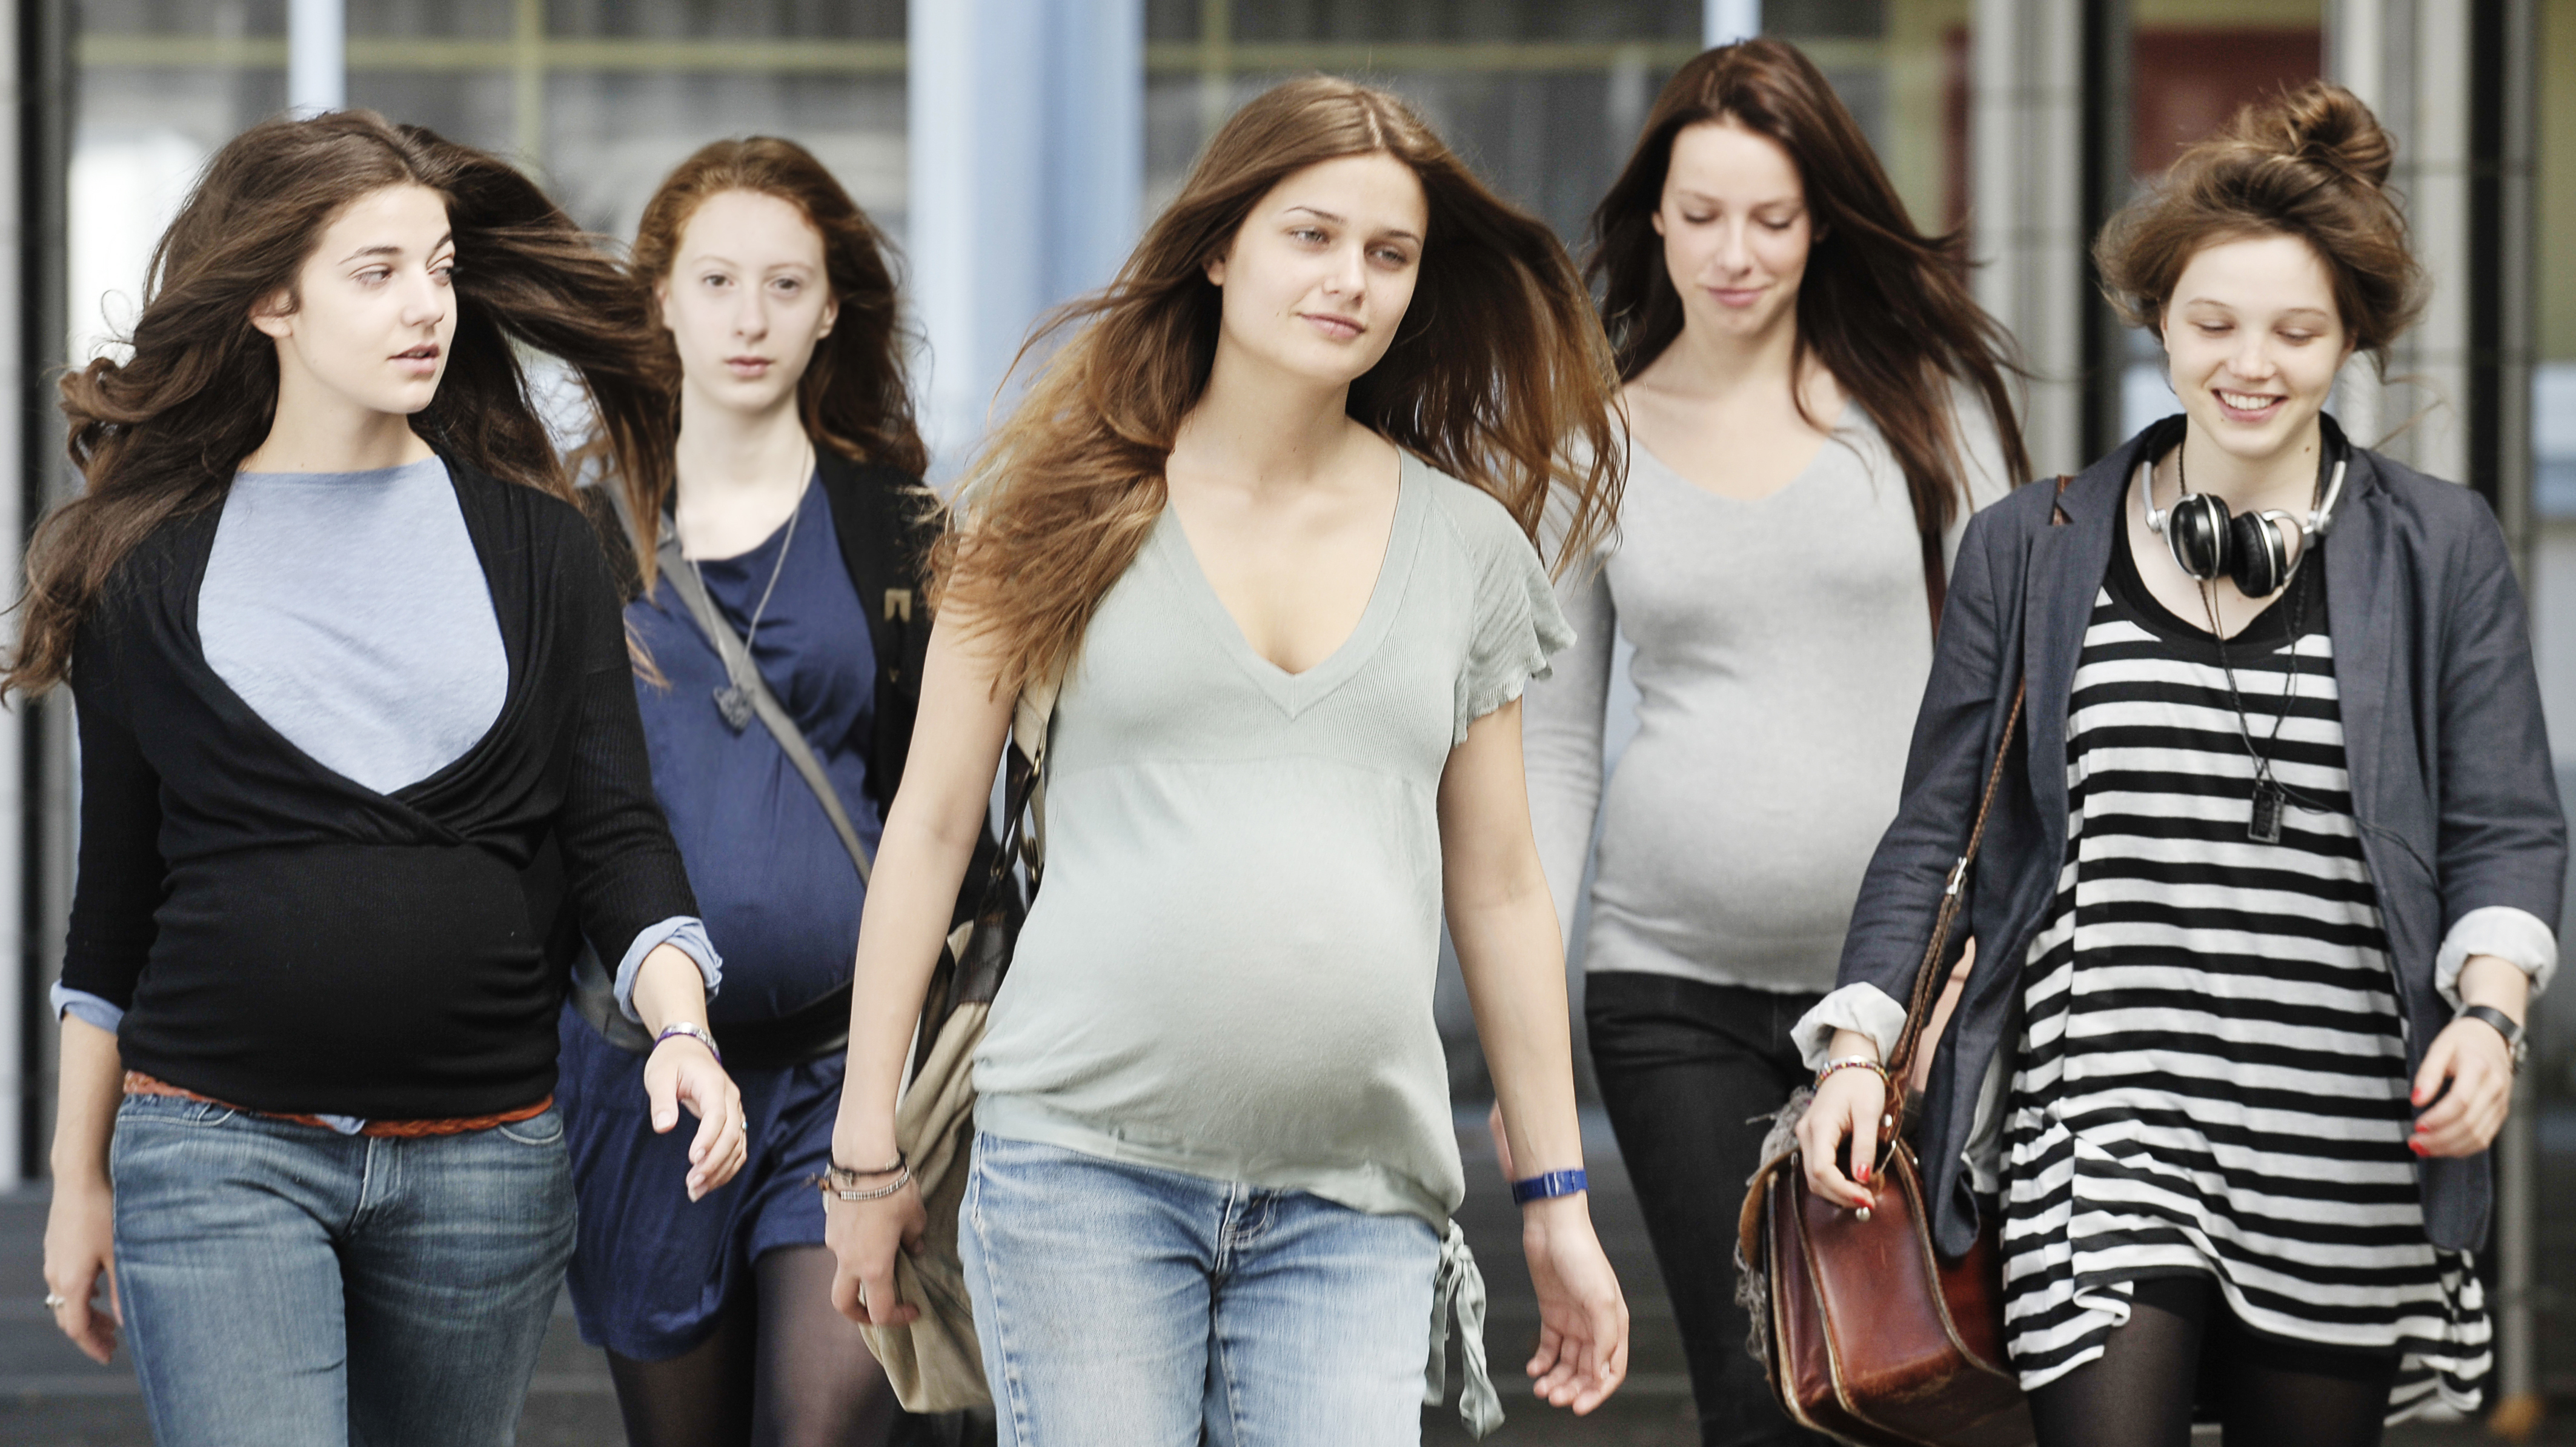 Pregnancy Pact Questions